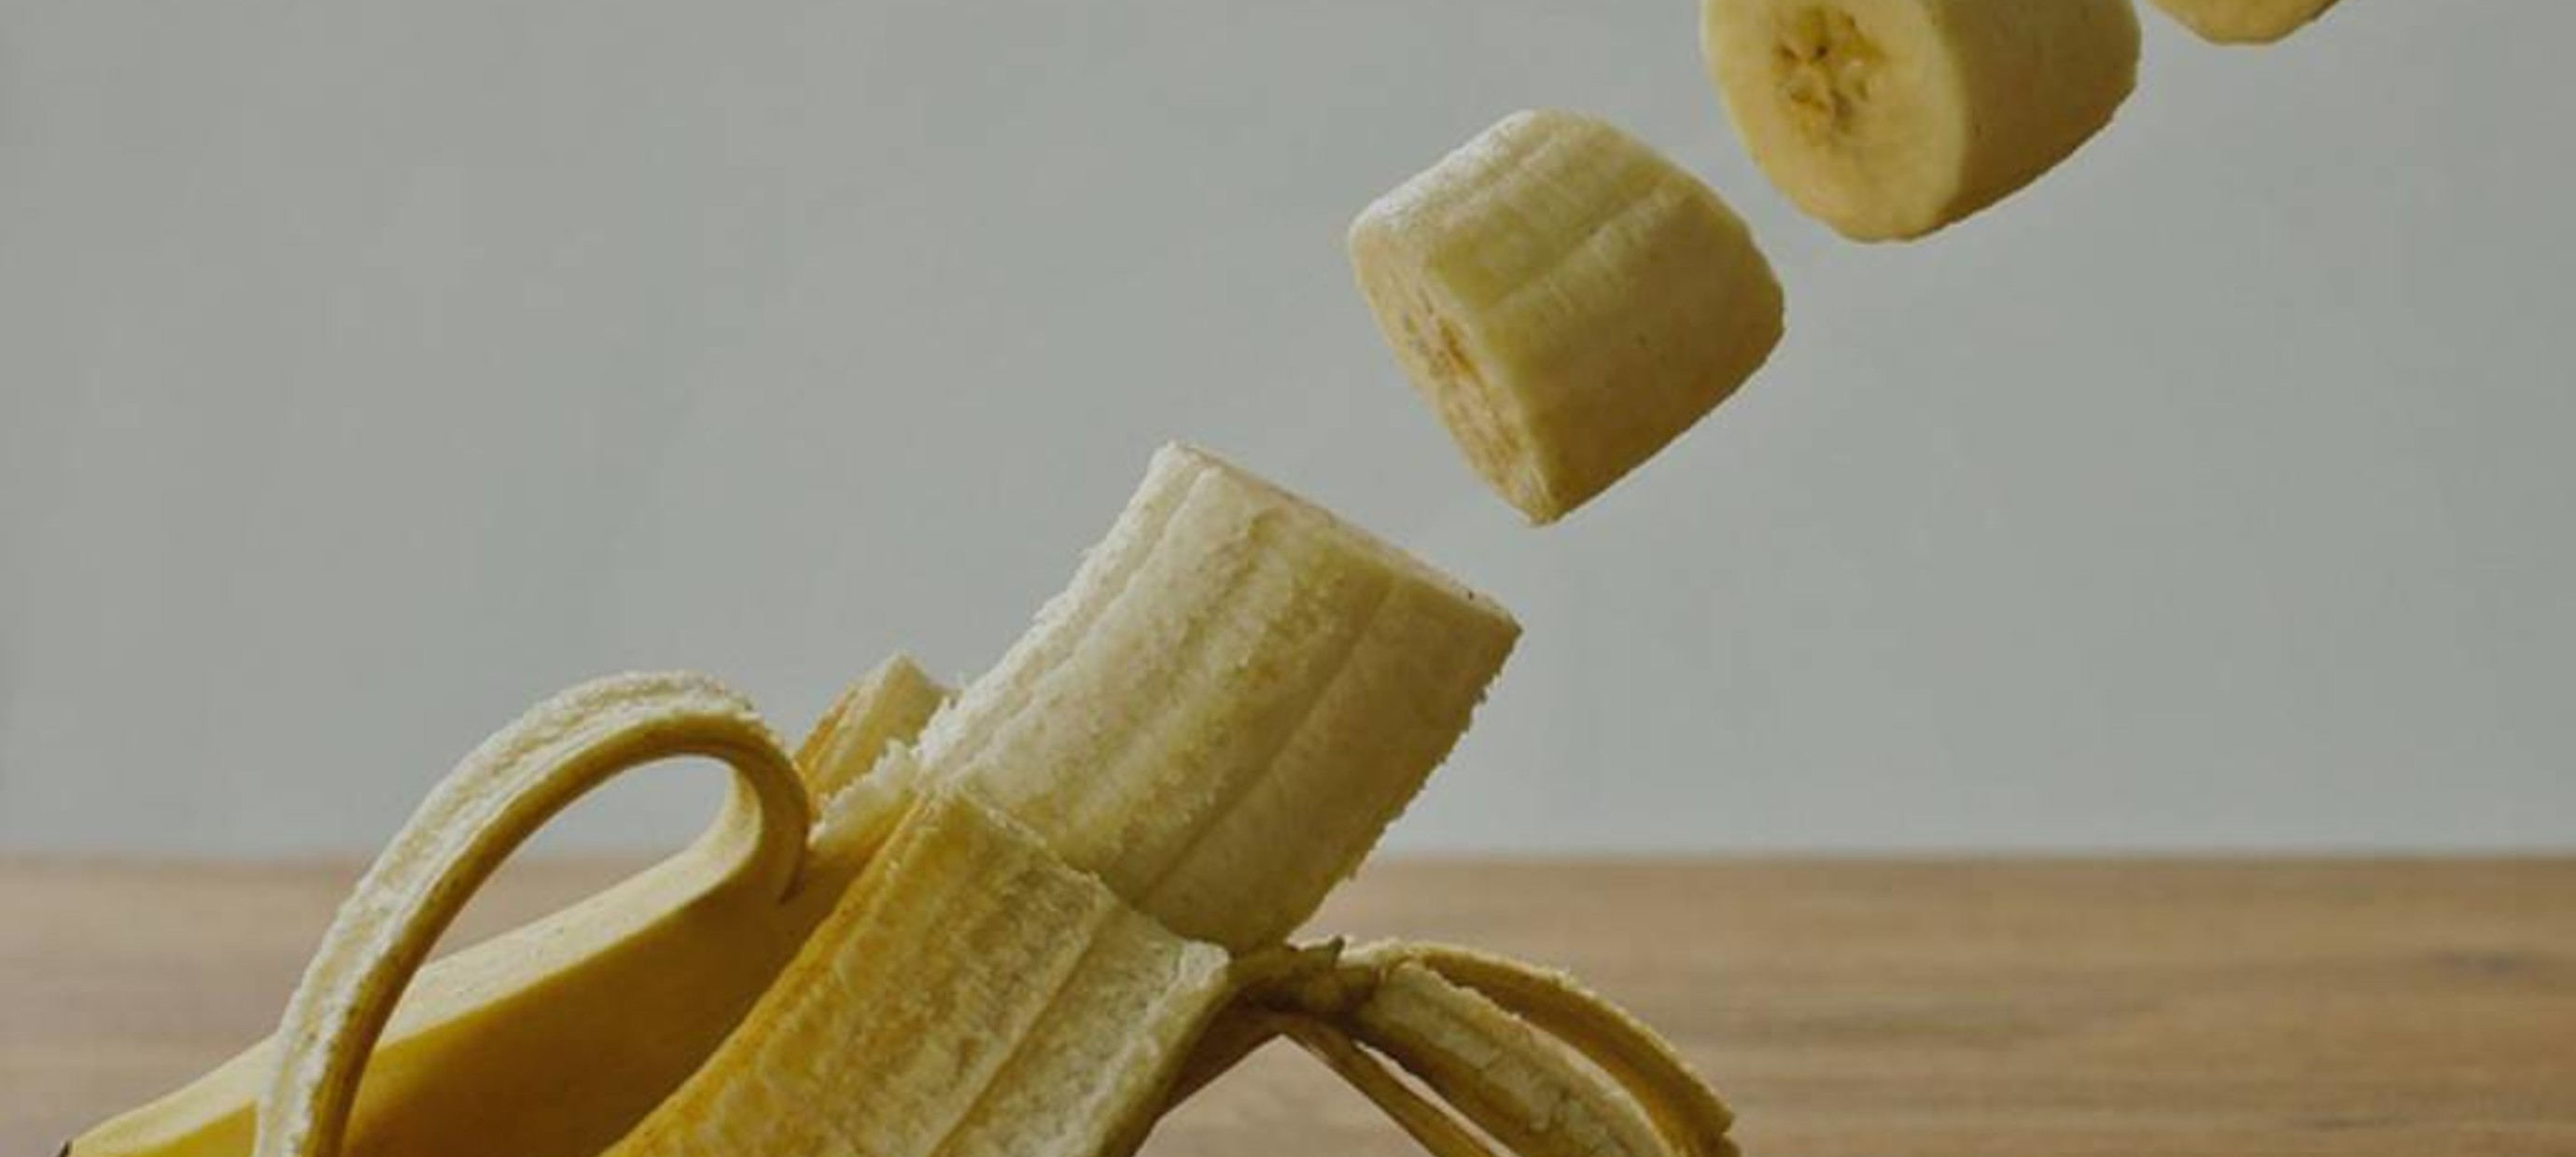 Why you should eat bananas during a squash match